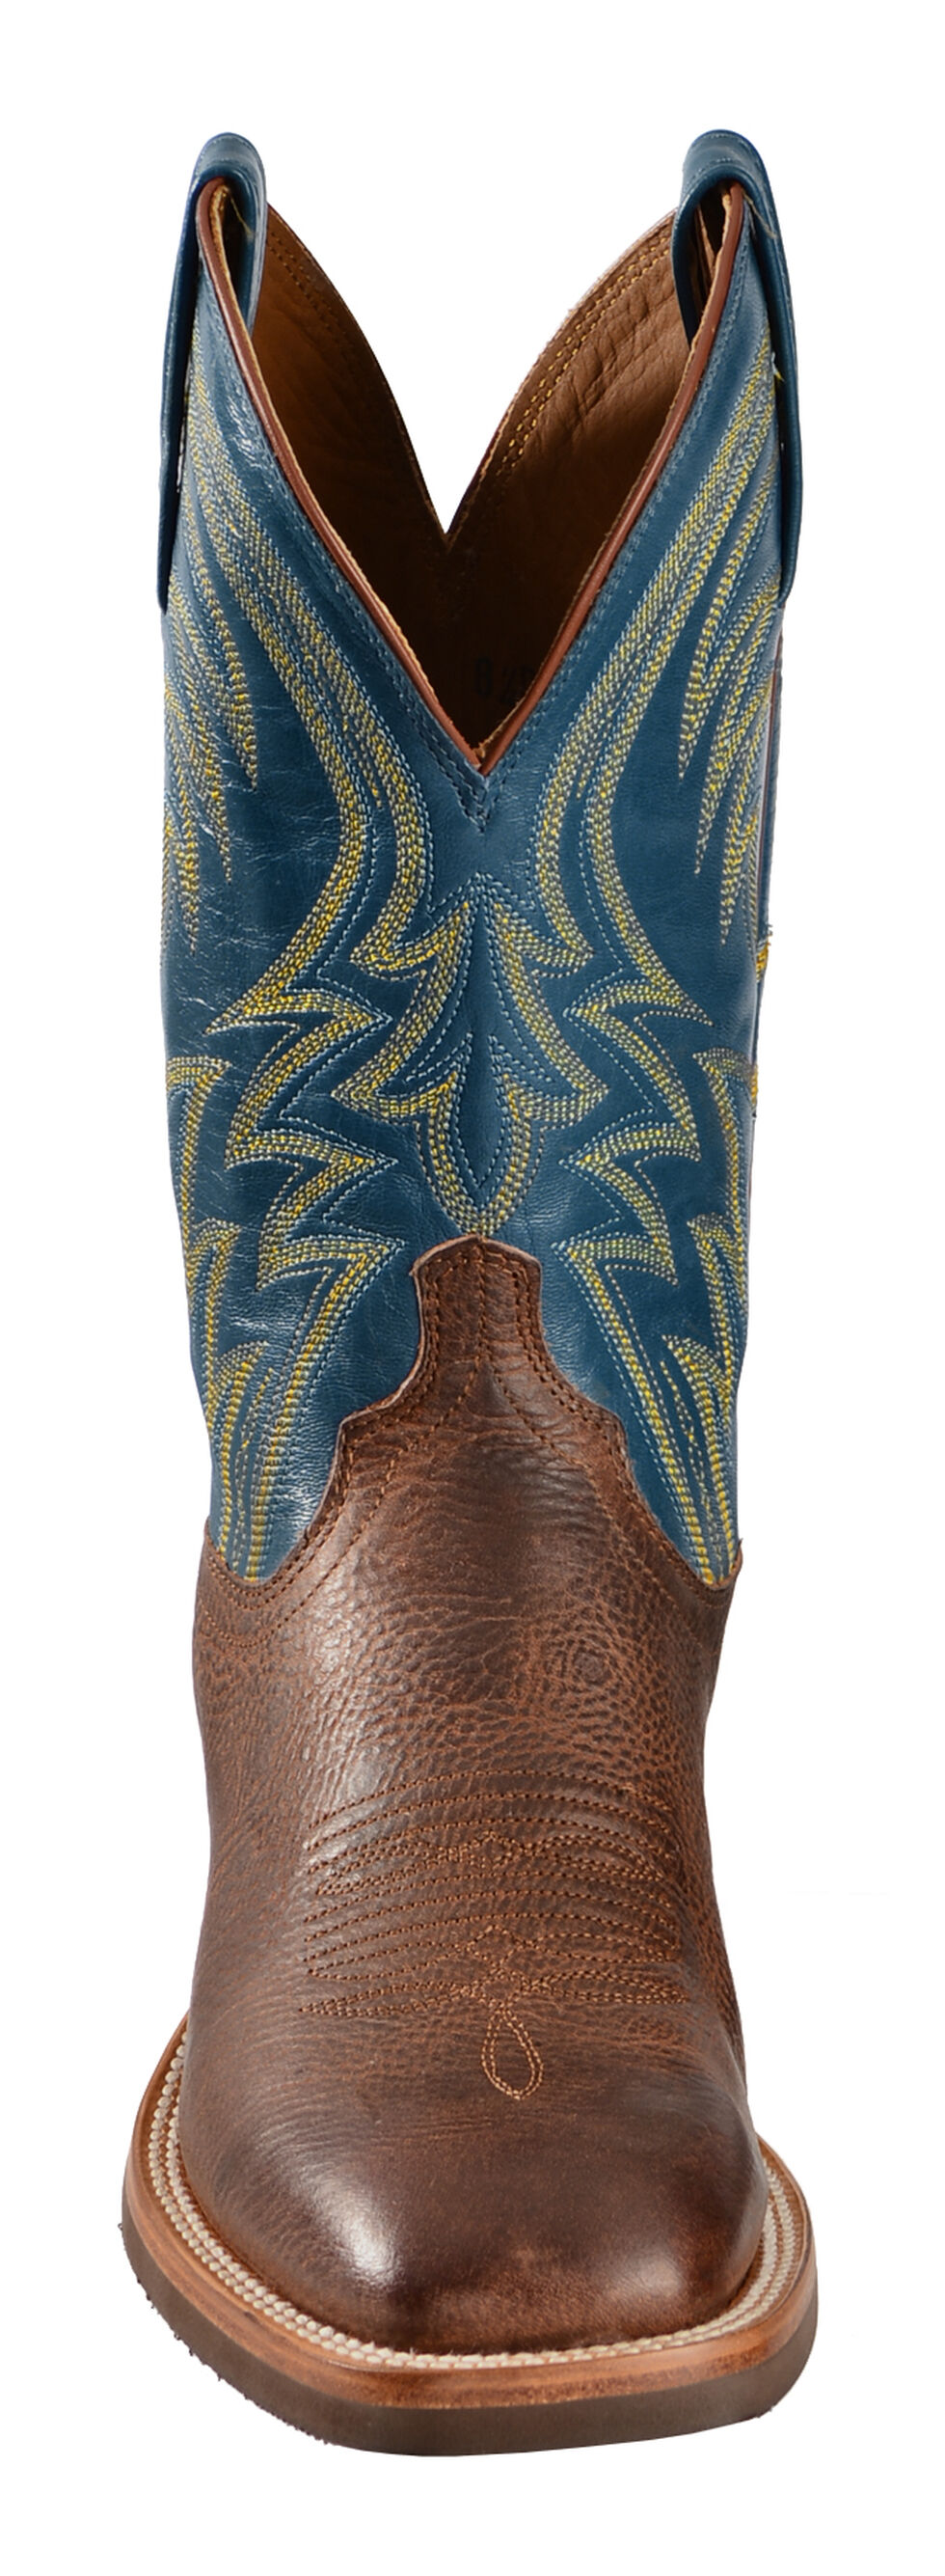 Lucchese Handmade Alan Smooth Cowhide Cowboy Boots - Square Toe , Cognac, hi-res